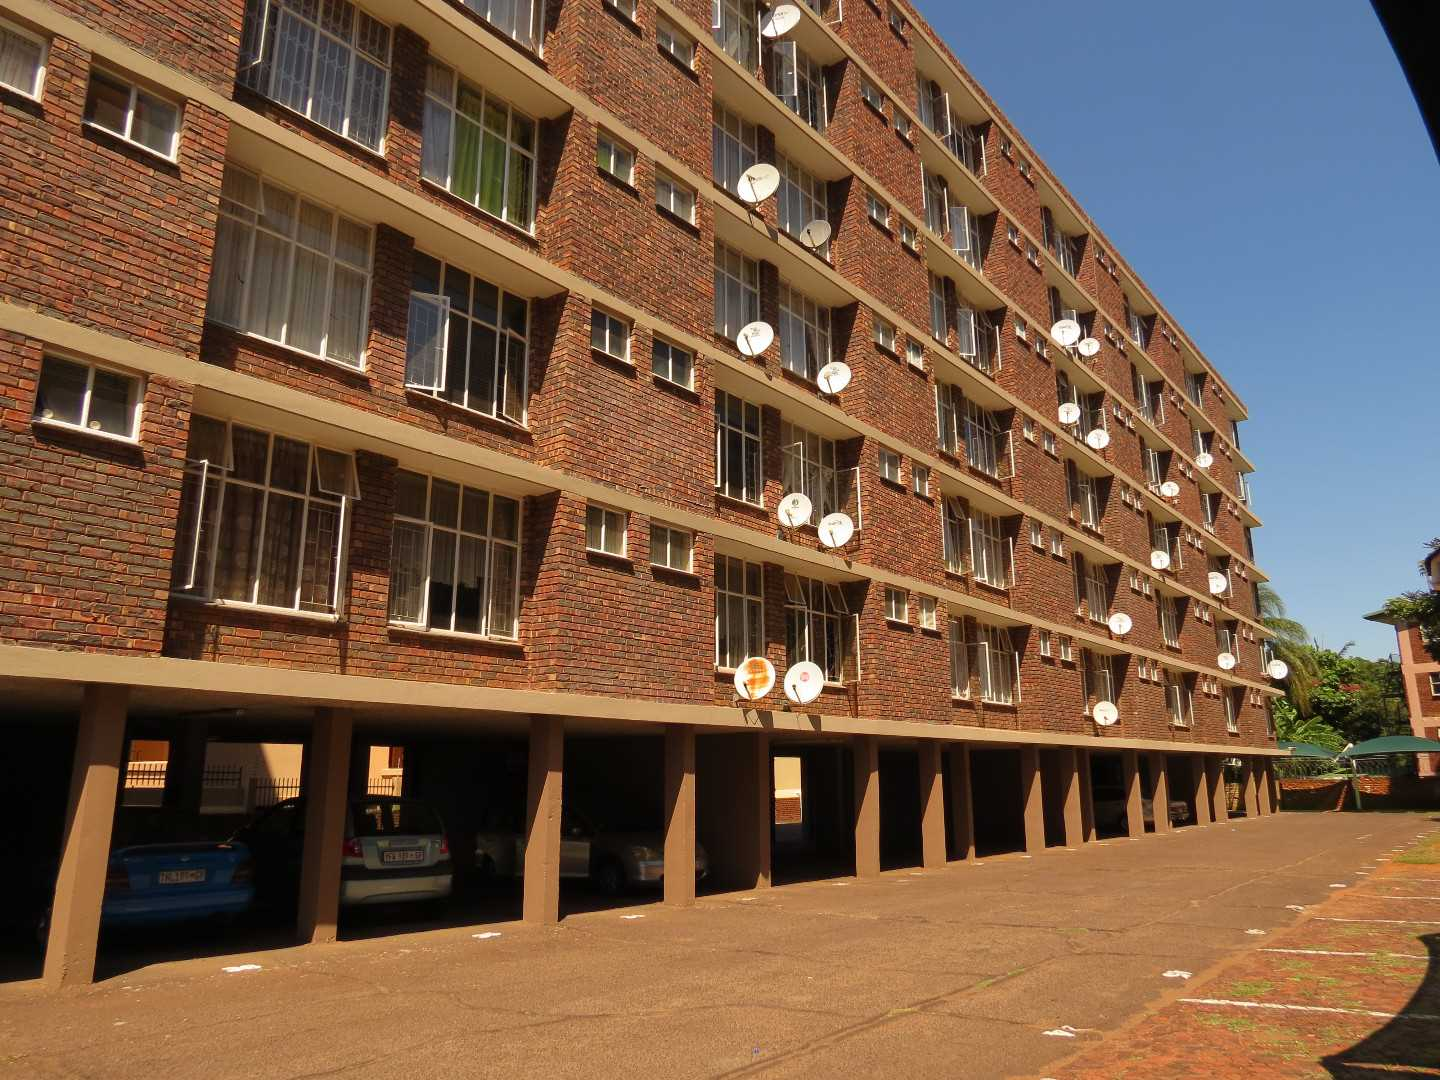 Six storey block in immaculate condition